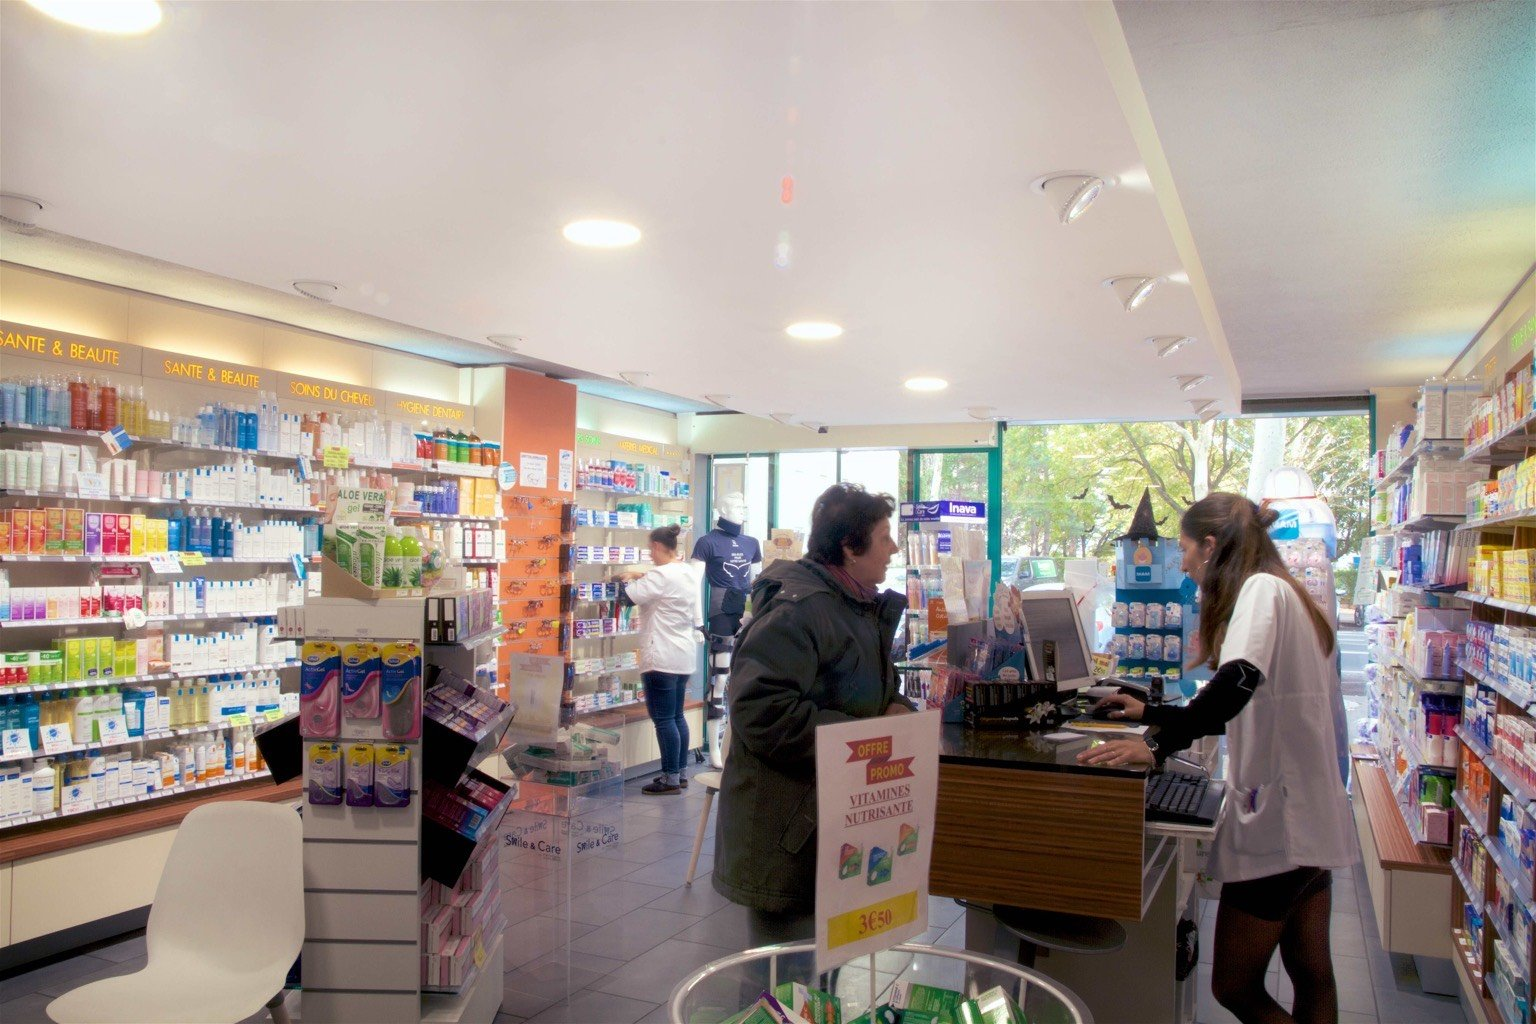 All-night drugstore and emergencies